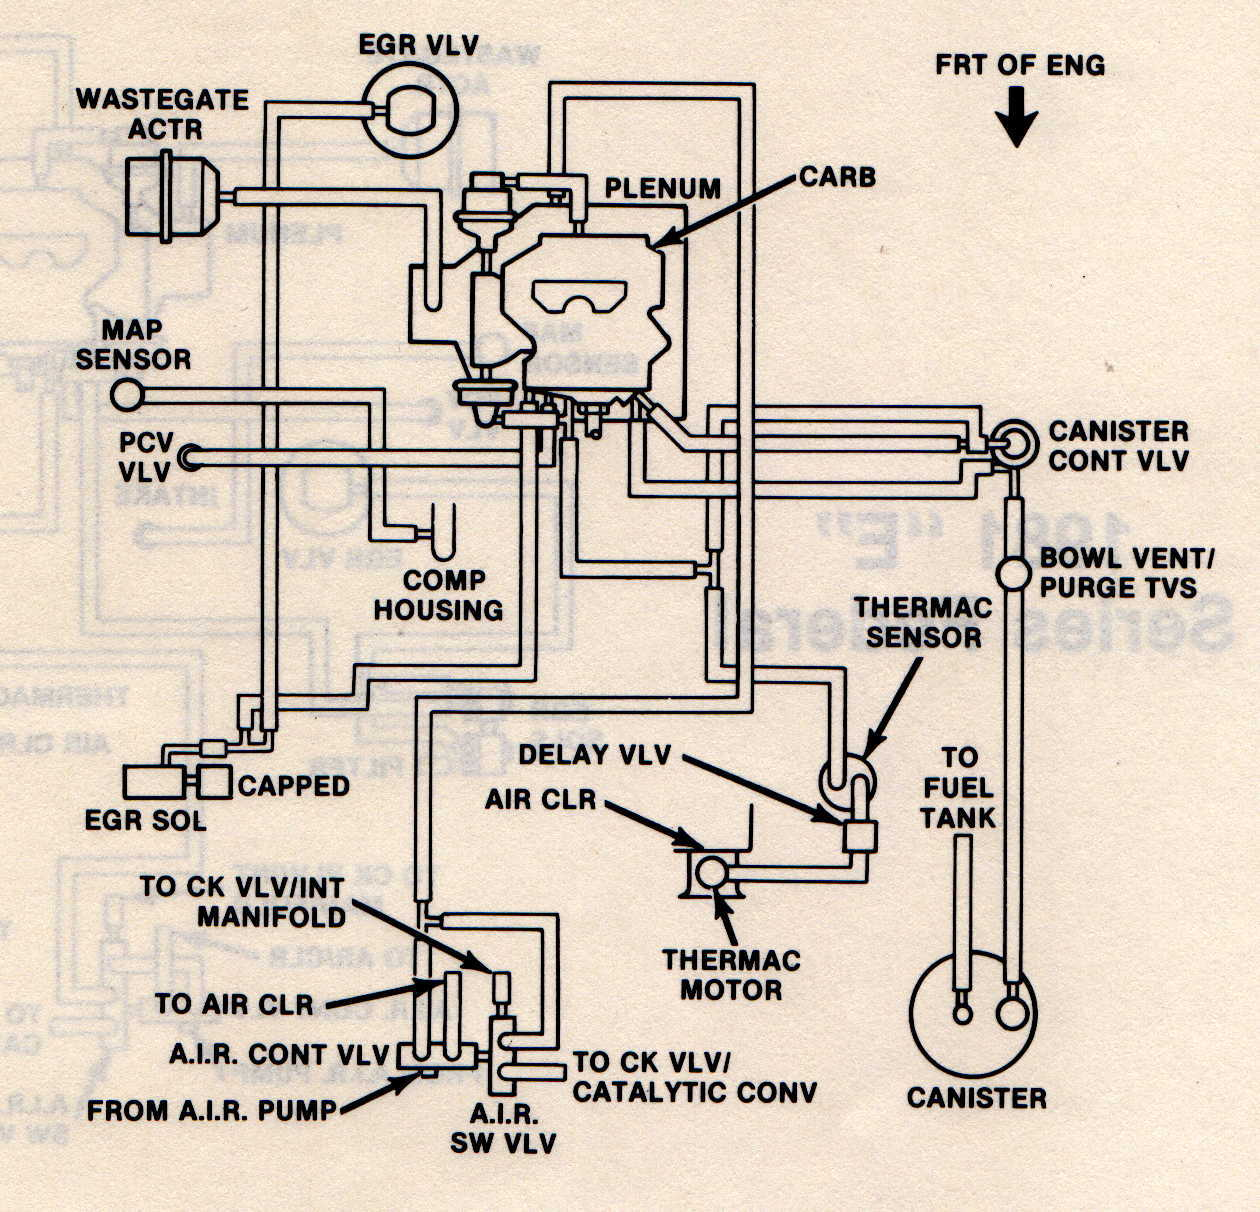 quadrajet carburetor vacuum hose diagram car interior design 2003 Buick  Regal Wiring-Diagram 1948 buick